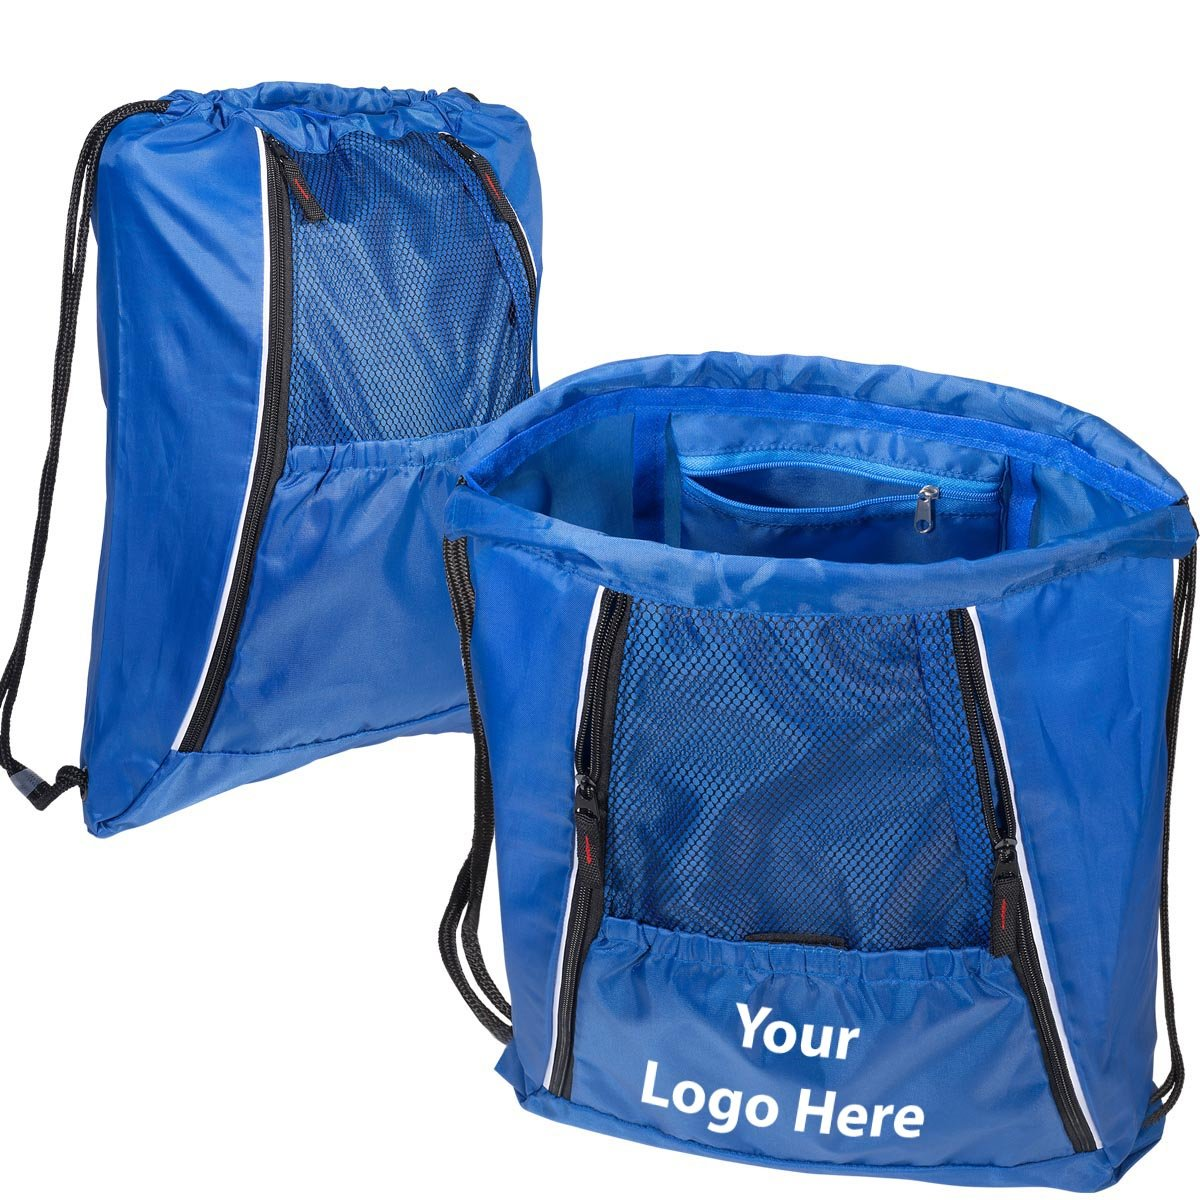 Multi Pocket String A Sling Backpack - 25 Quantity - $8.45 Each - PROMOTIONAL PRODUCT / BULK / BRANDED with YOUR LOGO / CUSTOMIZED